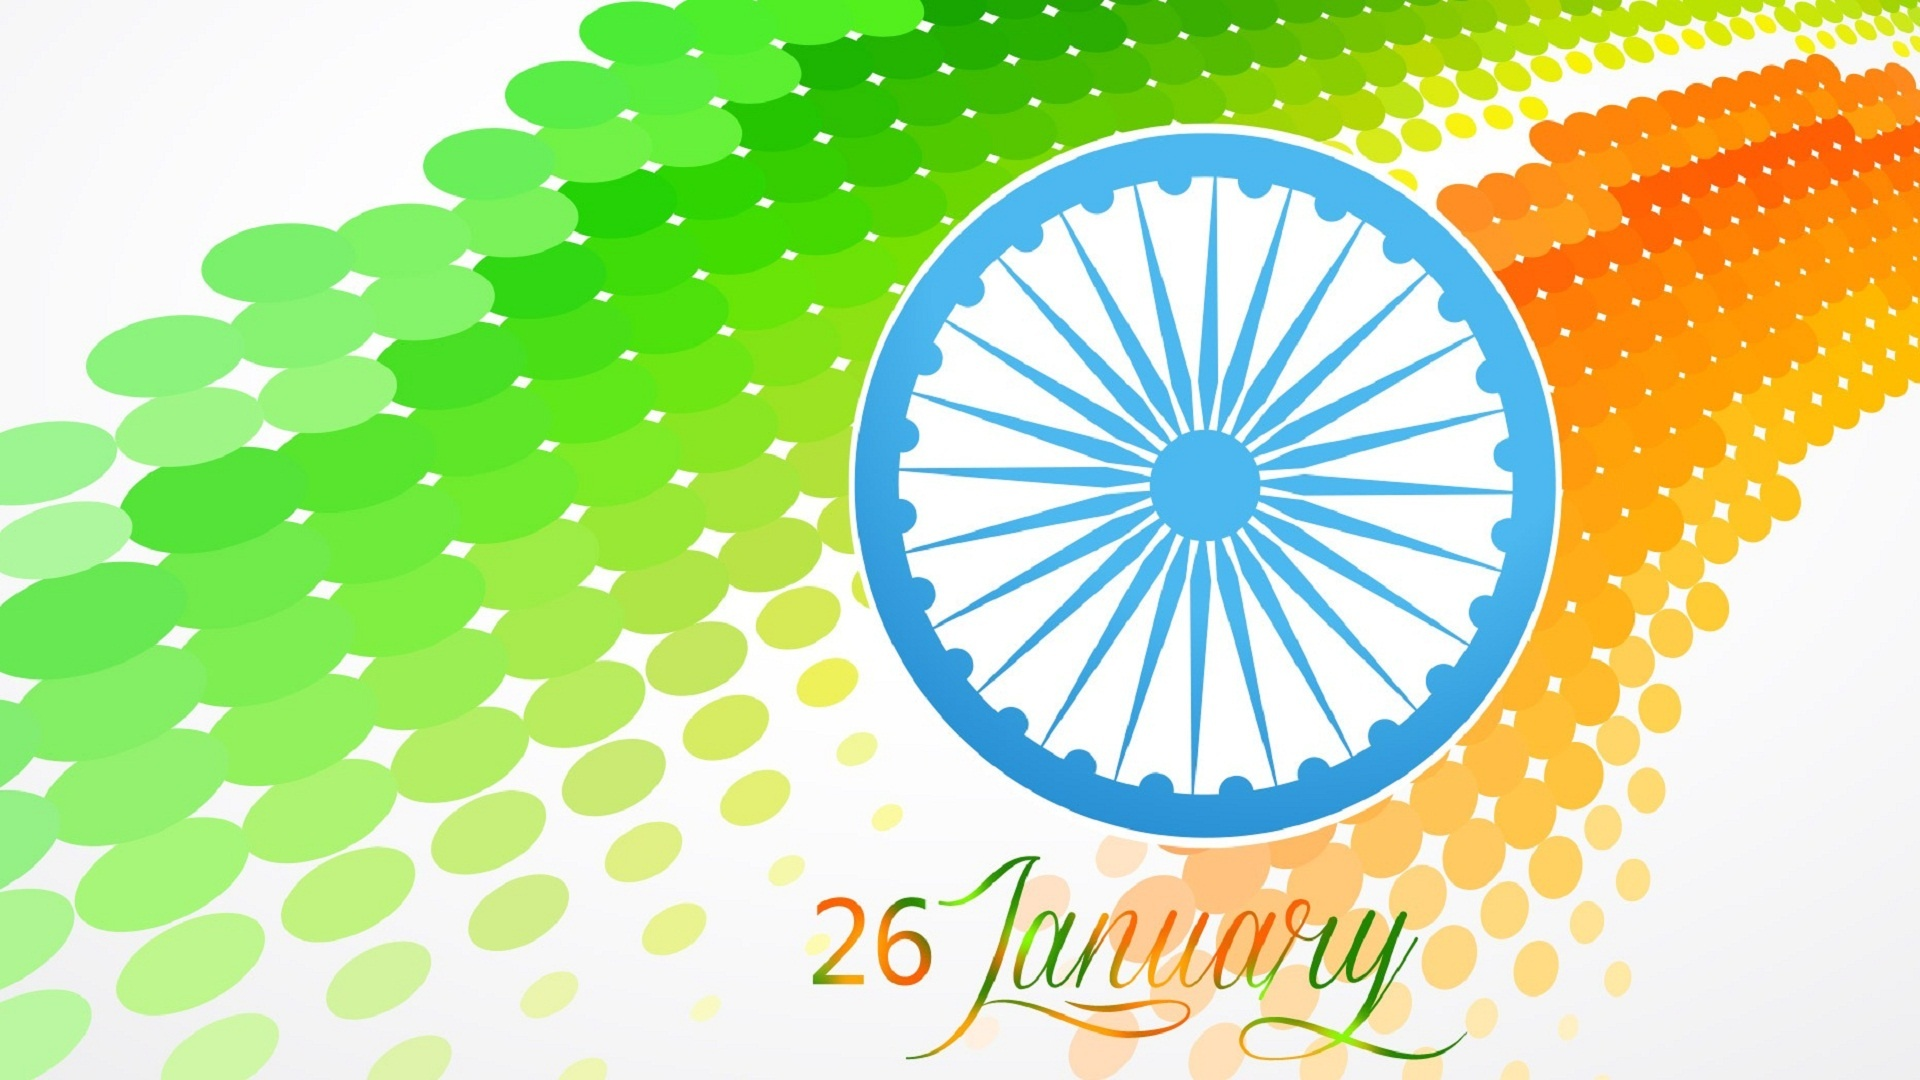 Stylish Indian Flag Wallpapers Stylish Indian Flag at 26